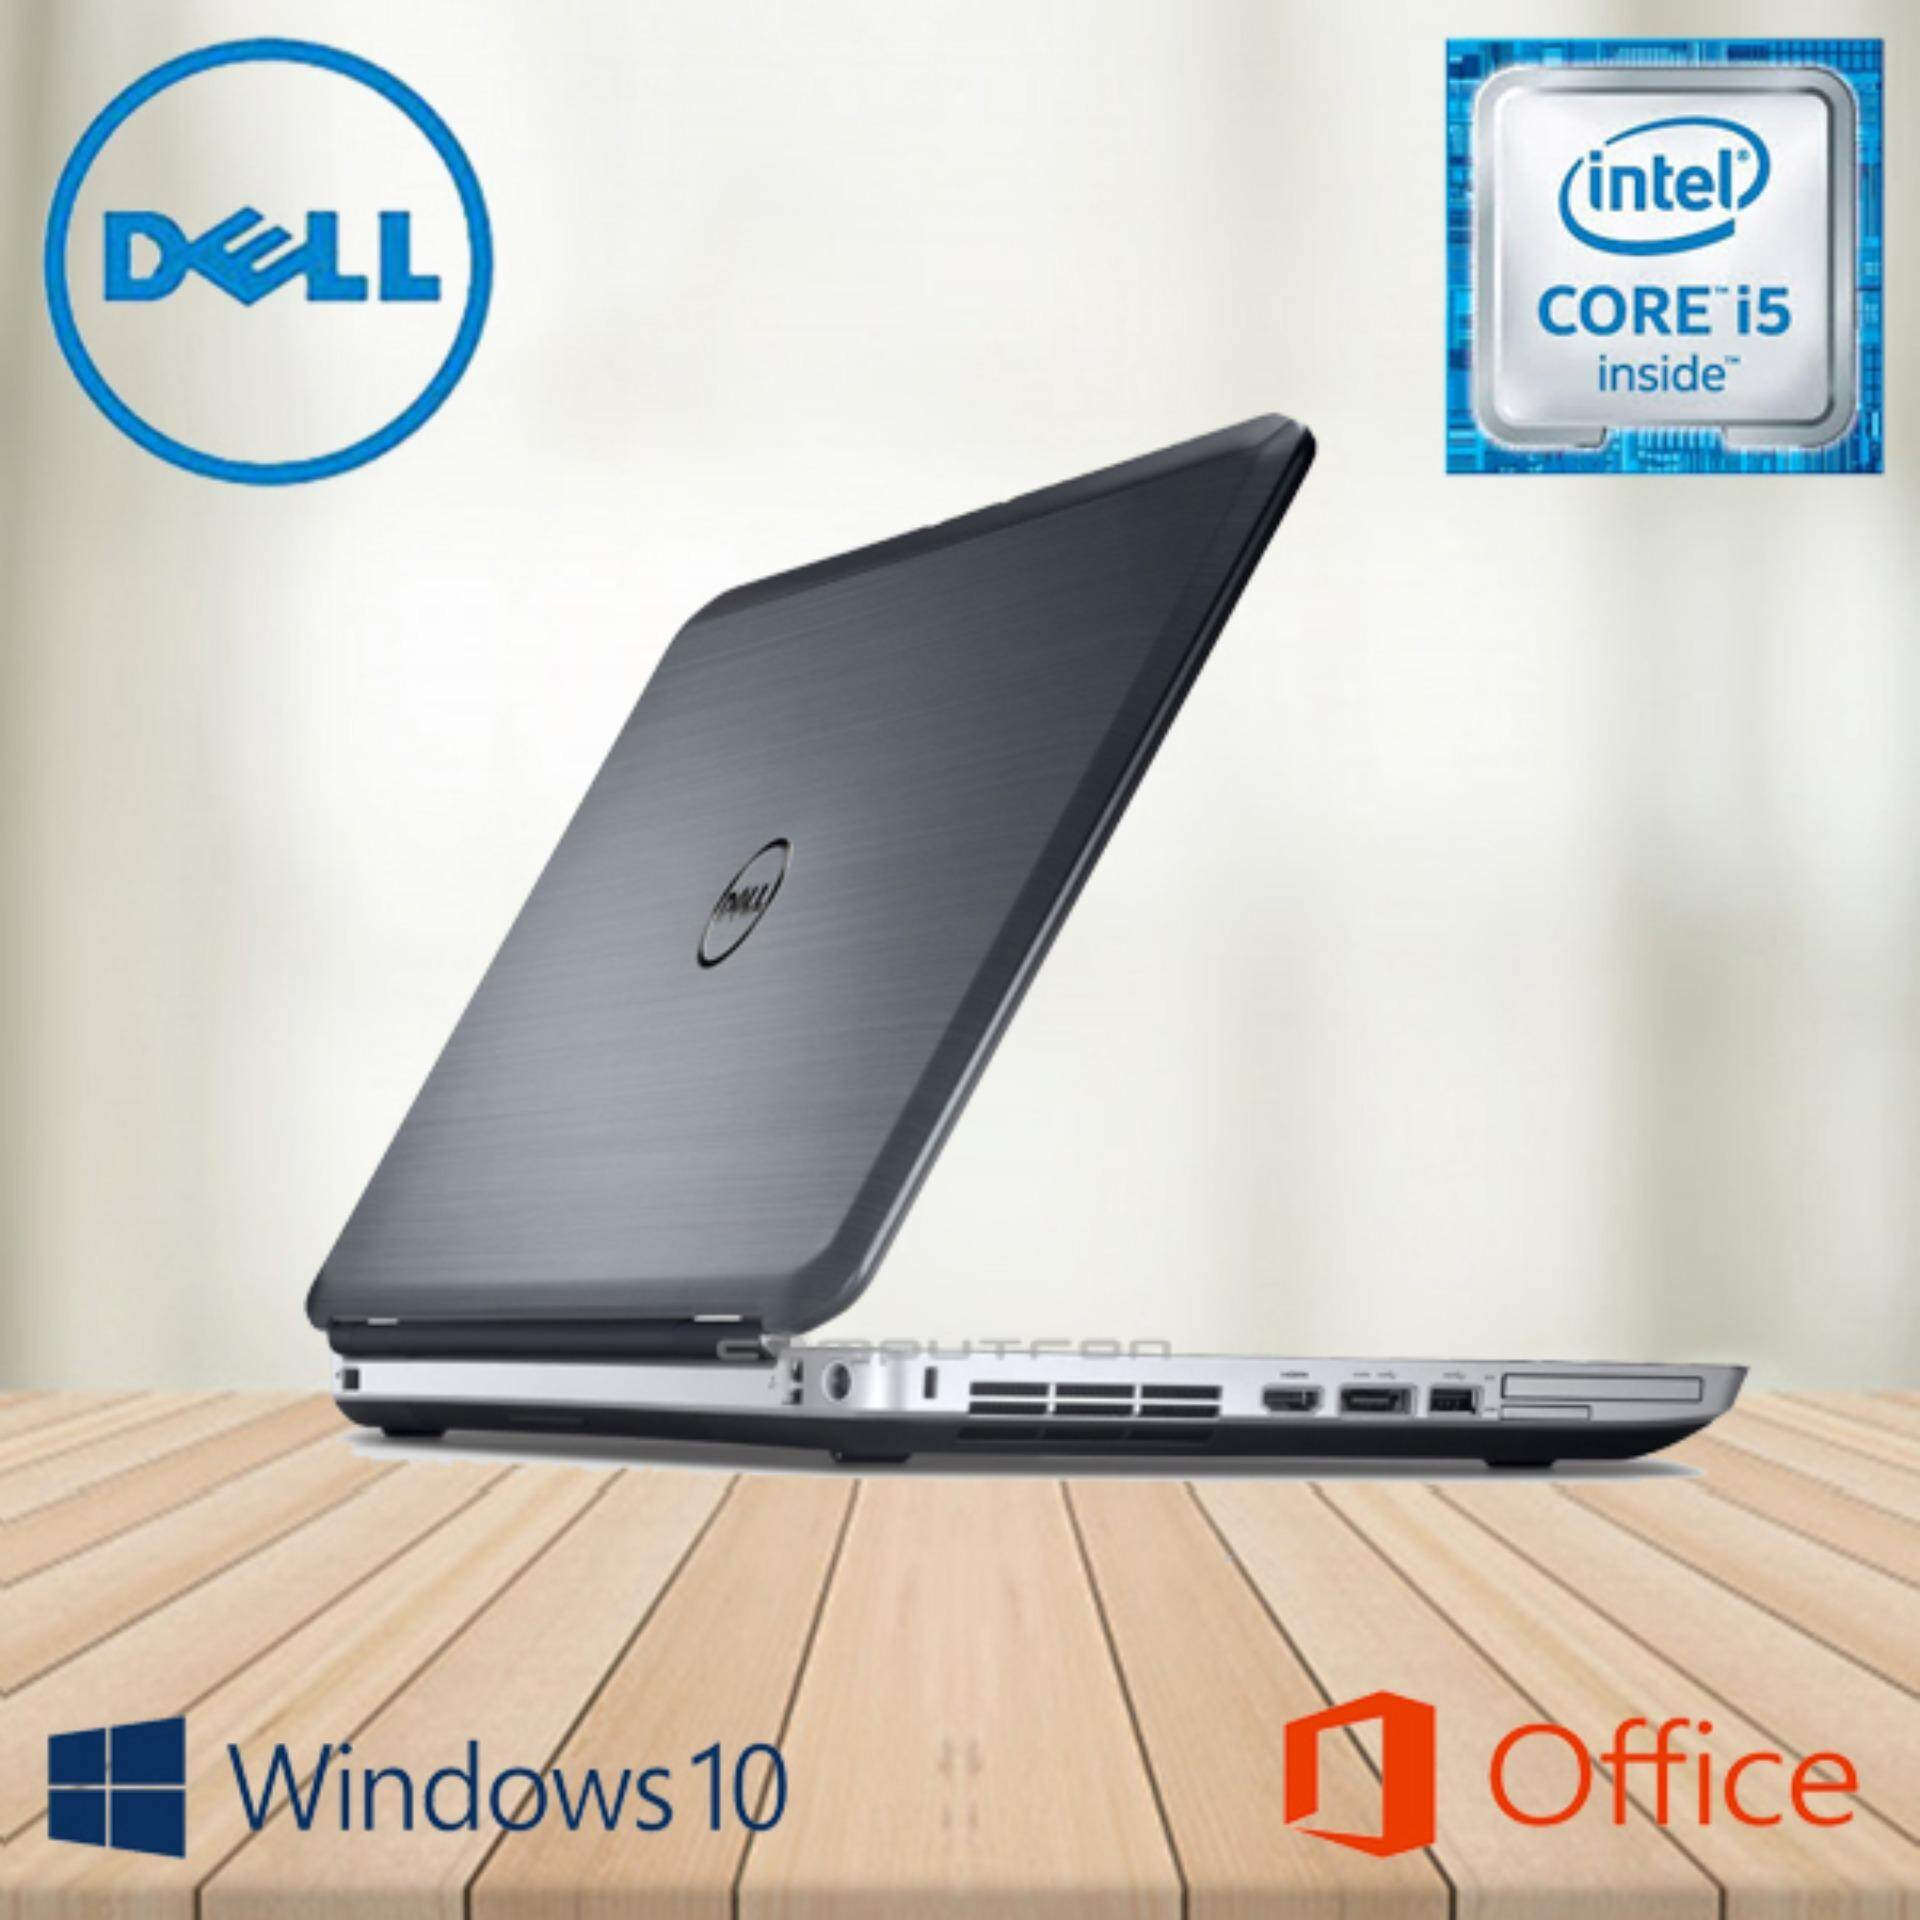 DELL LATITUDE E5420 [CORE I5/ 4GB DDR3/ 500GB HDD/ W10PRO]  1 YEAR WARRANTY Malaysia